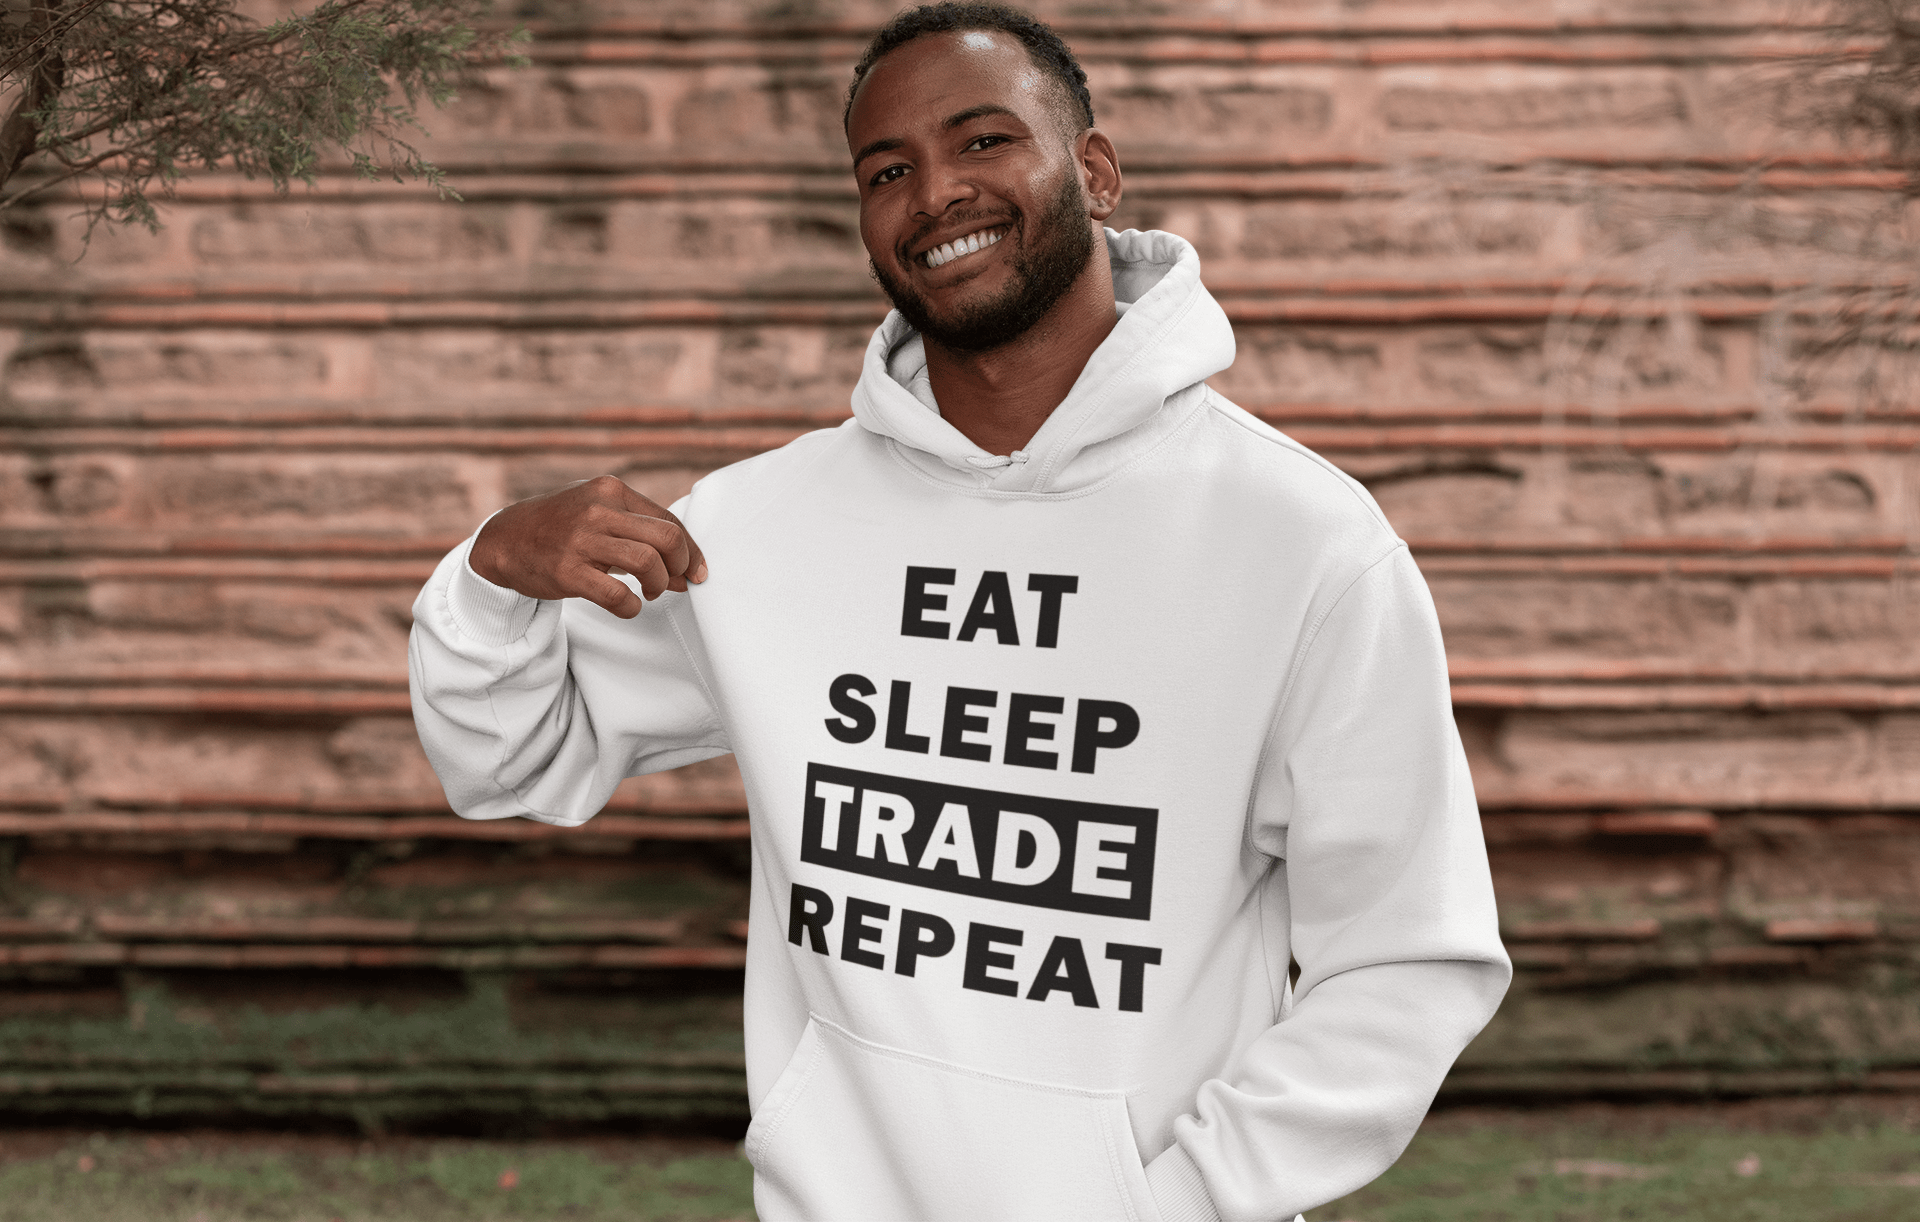 Forex Life 'Eat Sleep Trade Repeat' Mens Tradr. Hoody - Hoody's - TRADR. Clothing